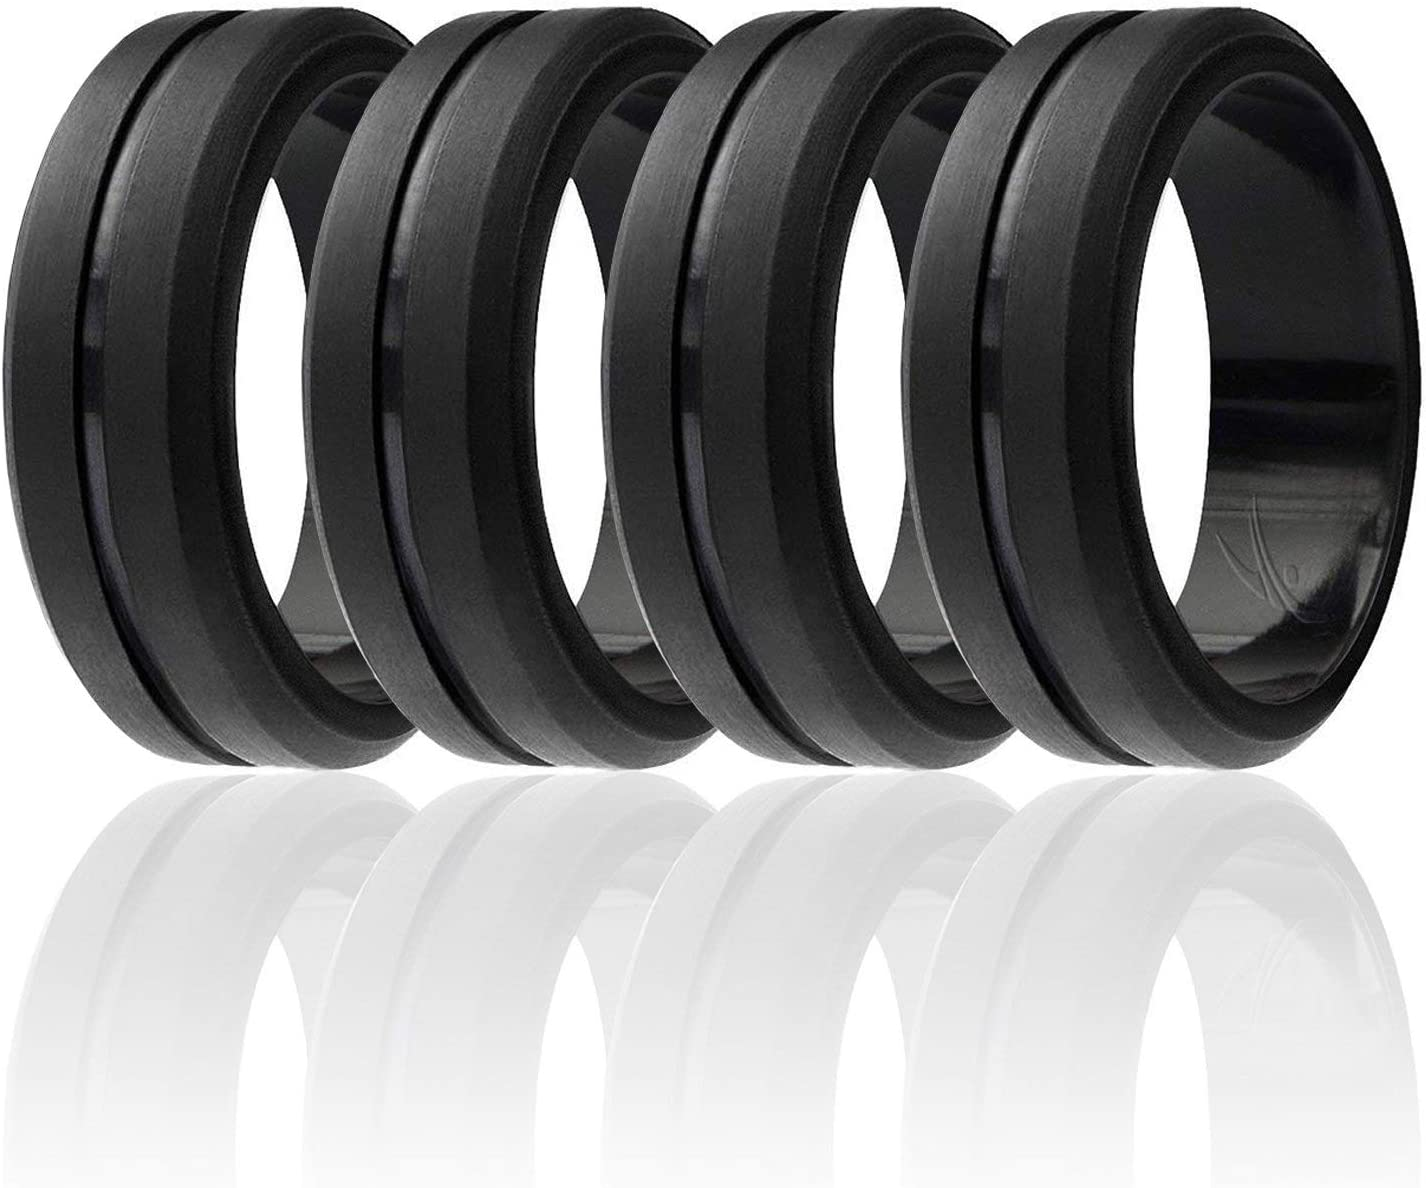 ROQ Silicone Wedding Ring for Men, Elegant, Affordable 8mm Silicone Rubber Wedding Bands, Singles & 4 Pack, Brushed Top Beveled Edges - Black, Metal Silver, Dark Gray